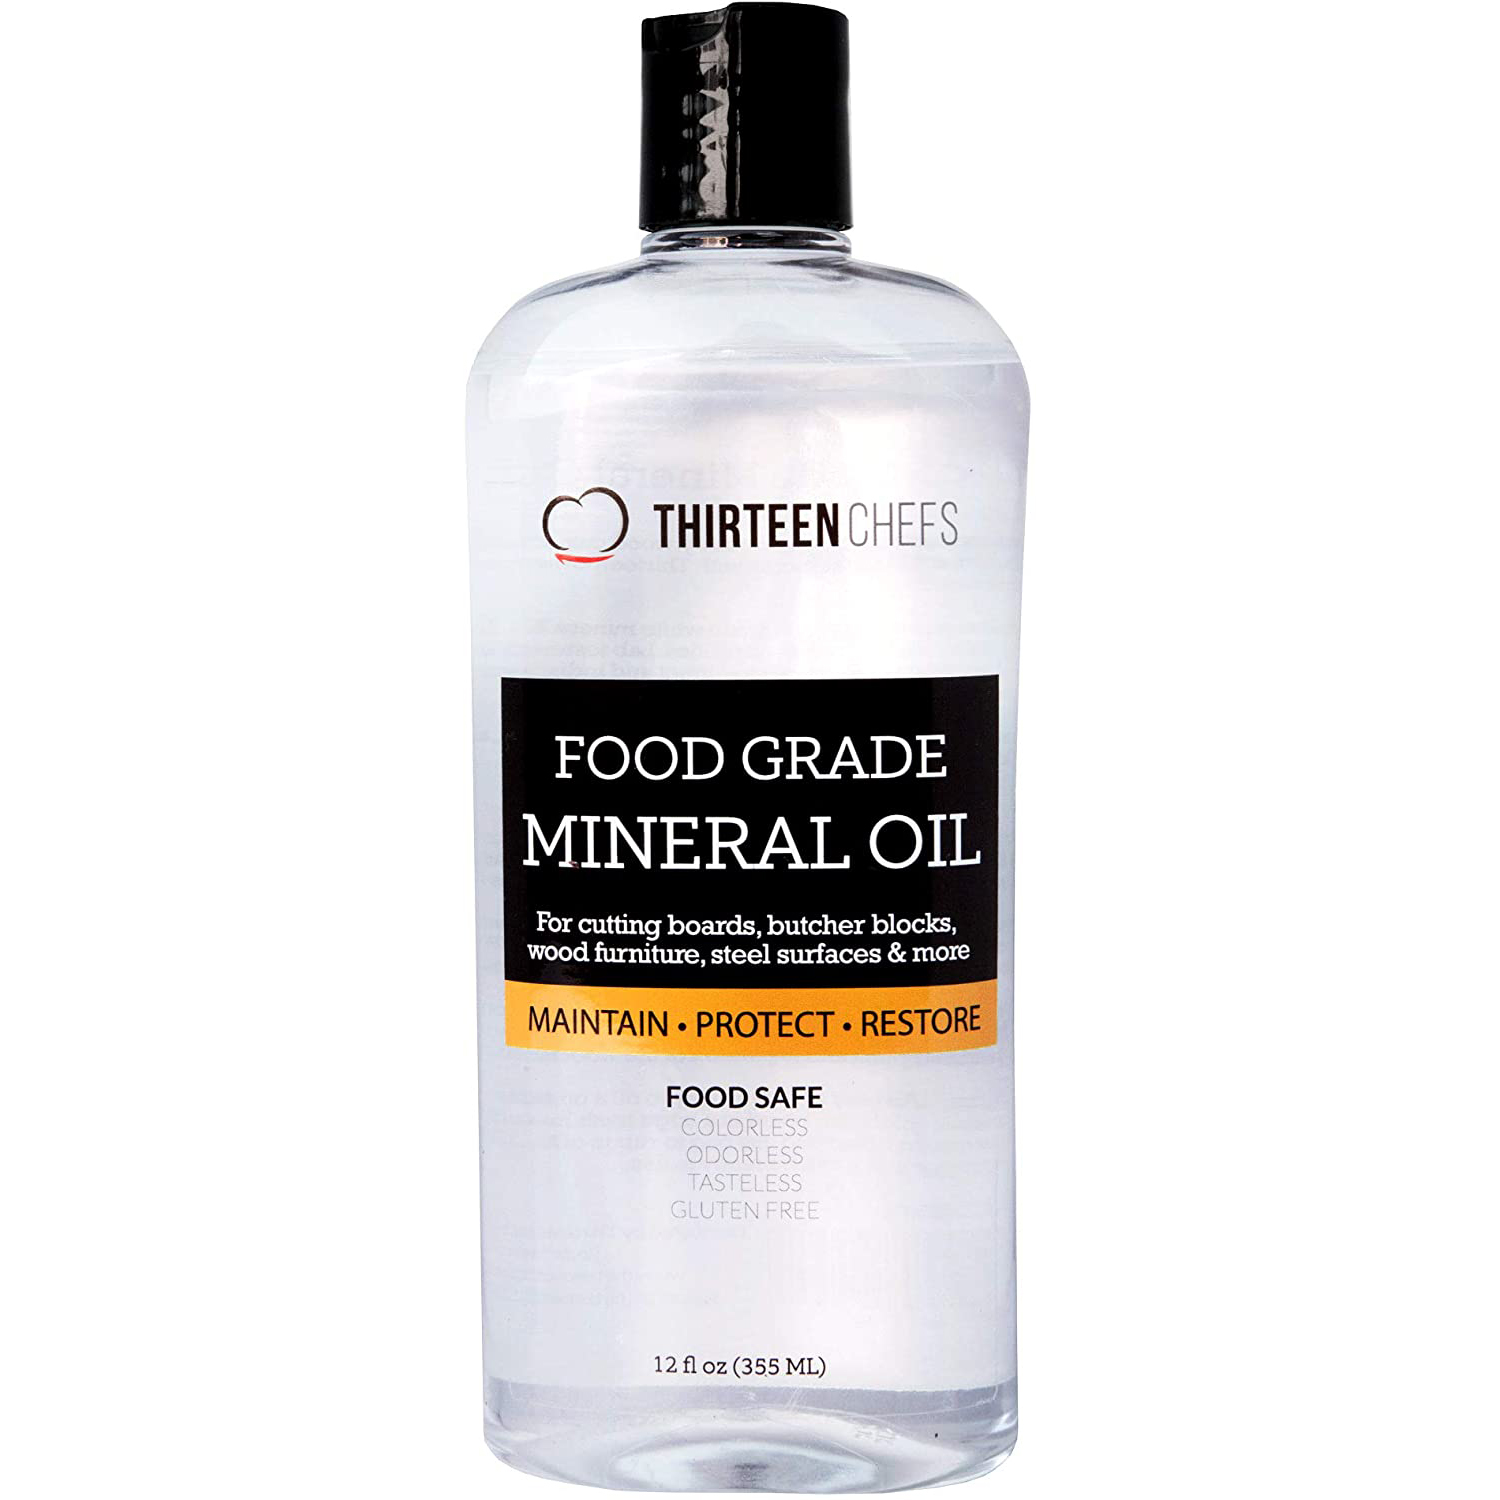 CuttingBoard Food Grade Mineral Oil for Cutting Boards, Countertops and Butcher Blocks